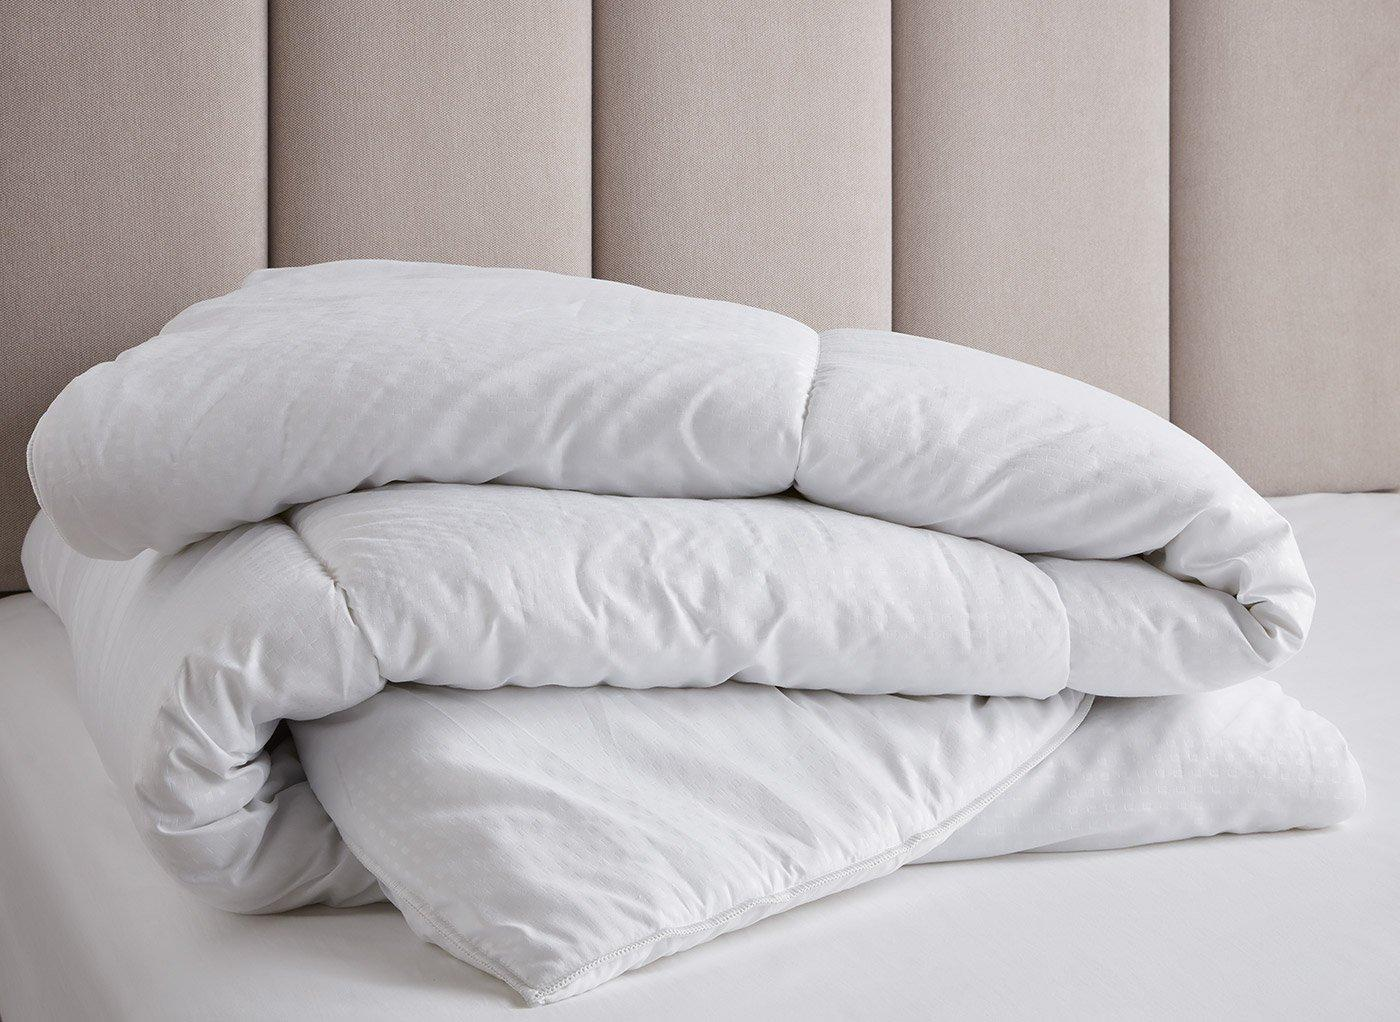 Doze Anti Allergy Duvet 3'0 Single